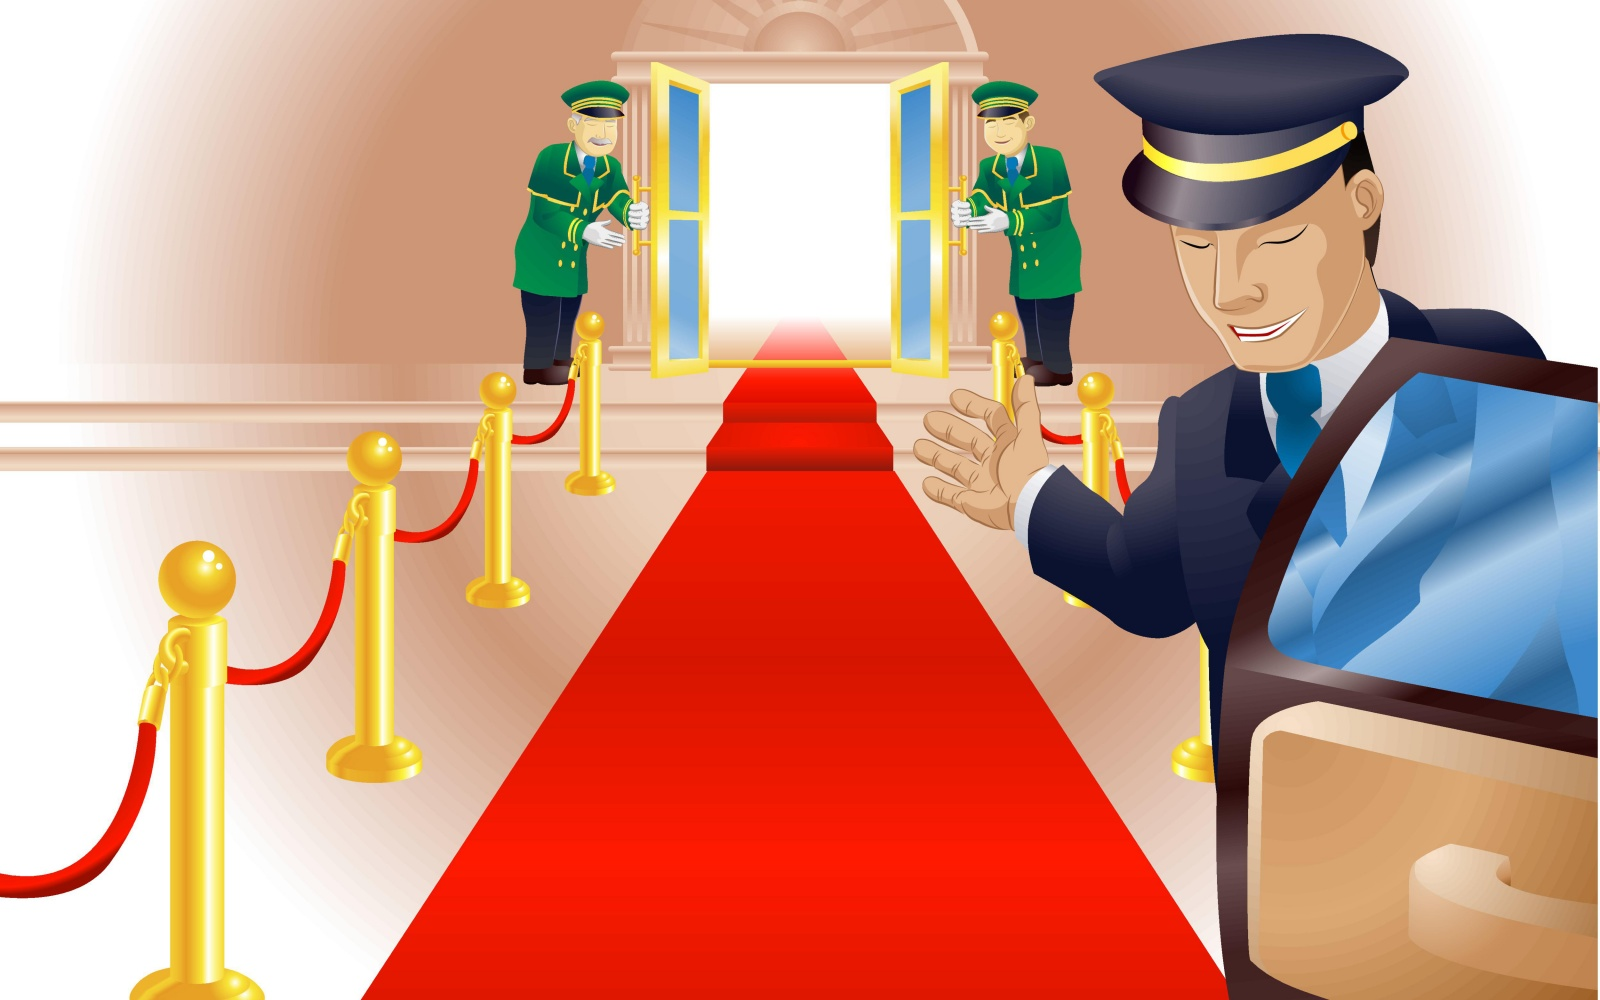 VIP hotel treatment illustration